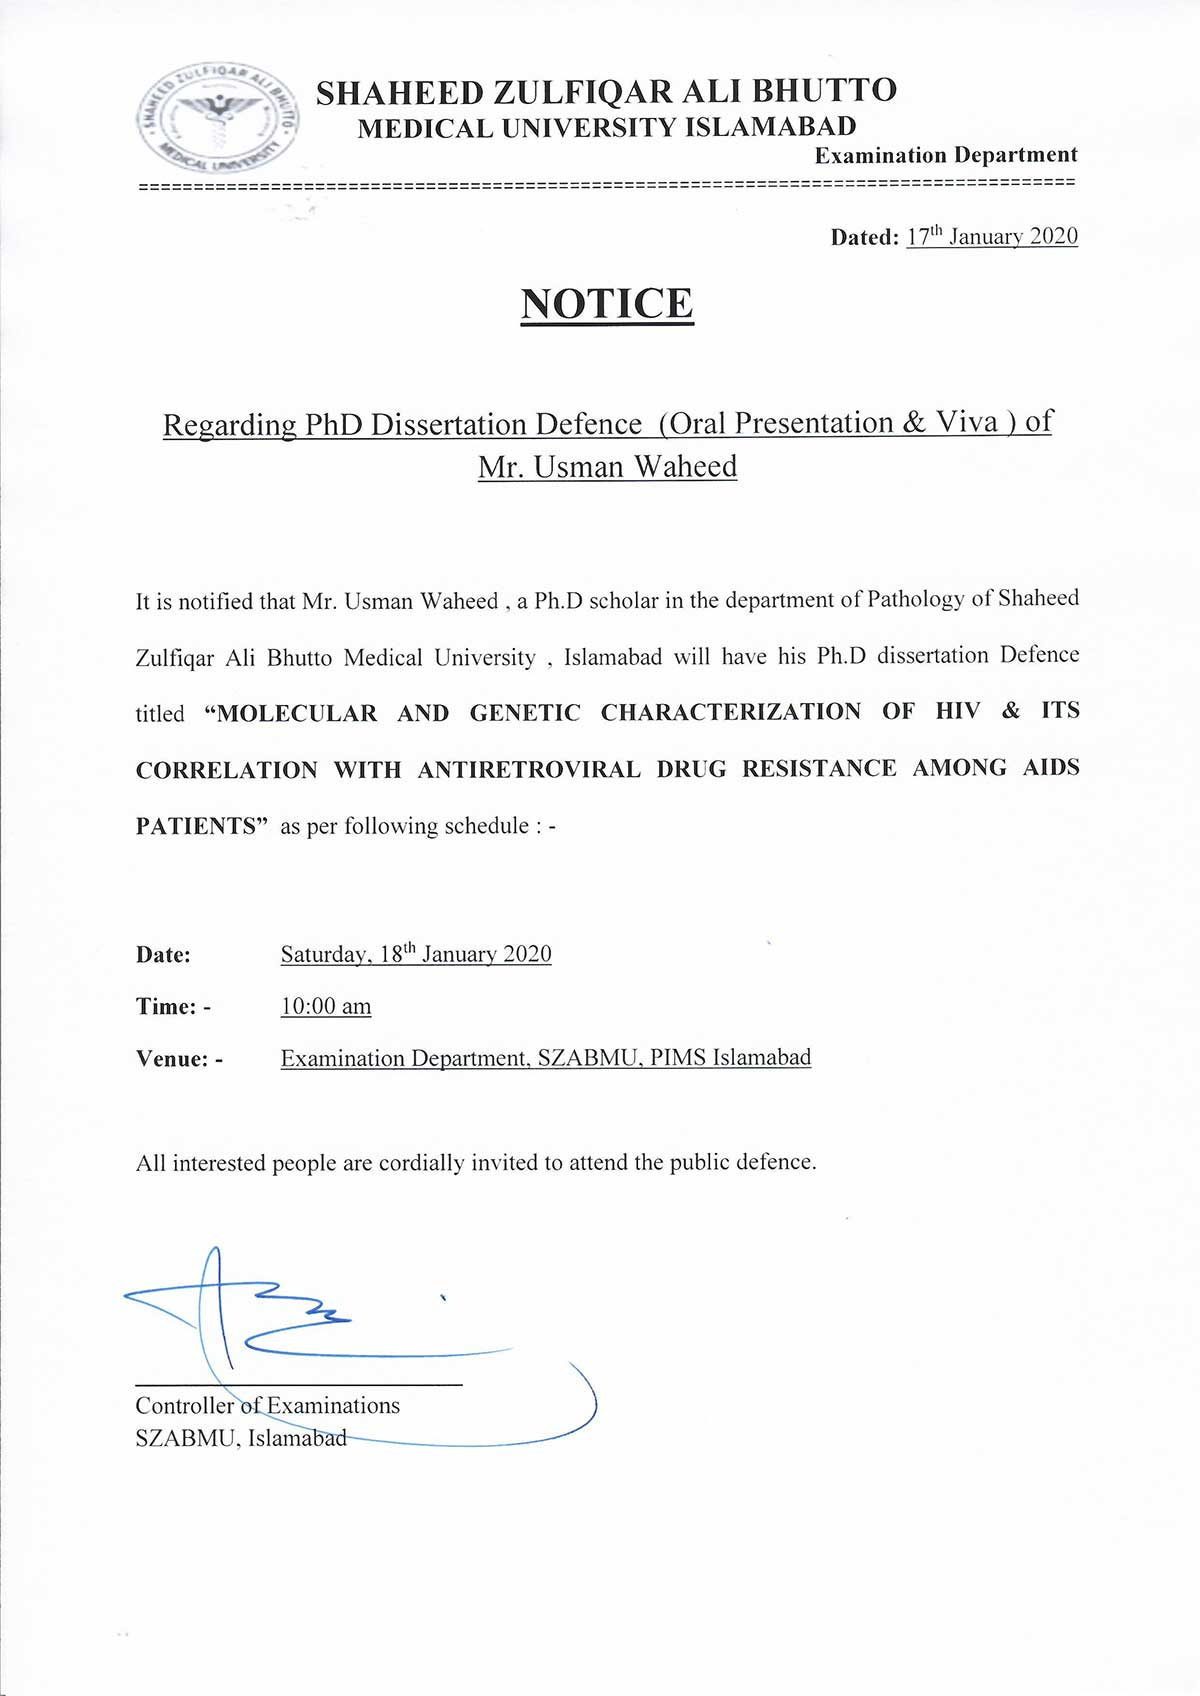 Notification of Ph.D Defence of Thesis